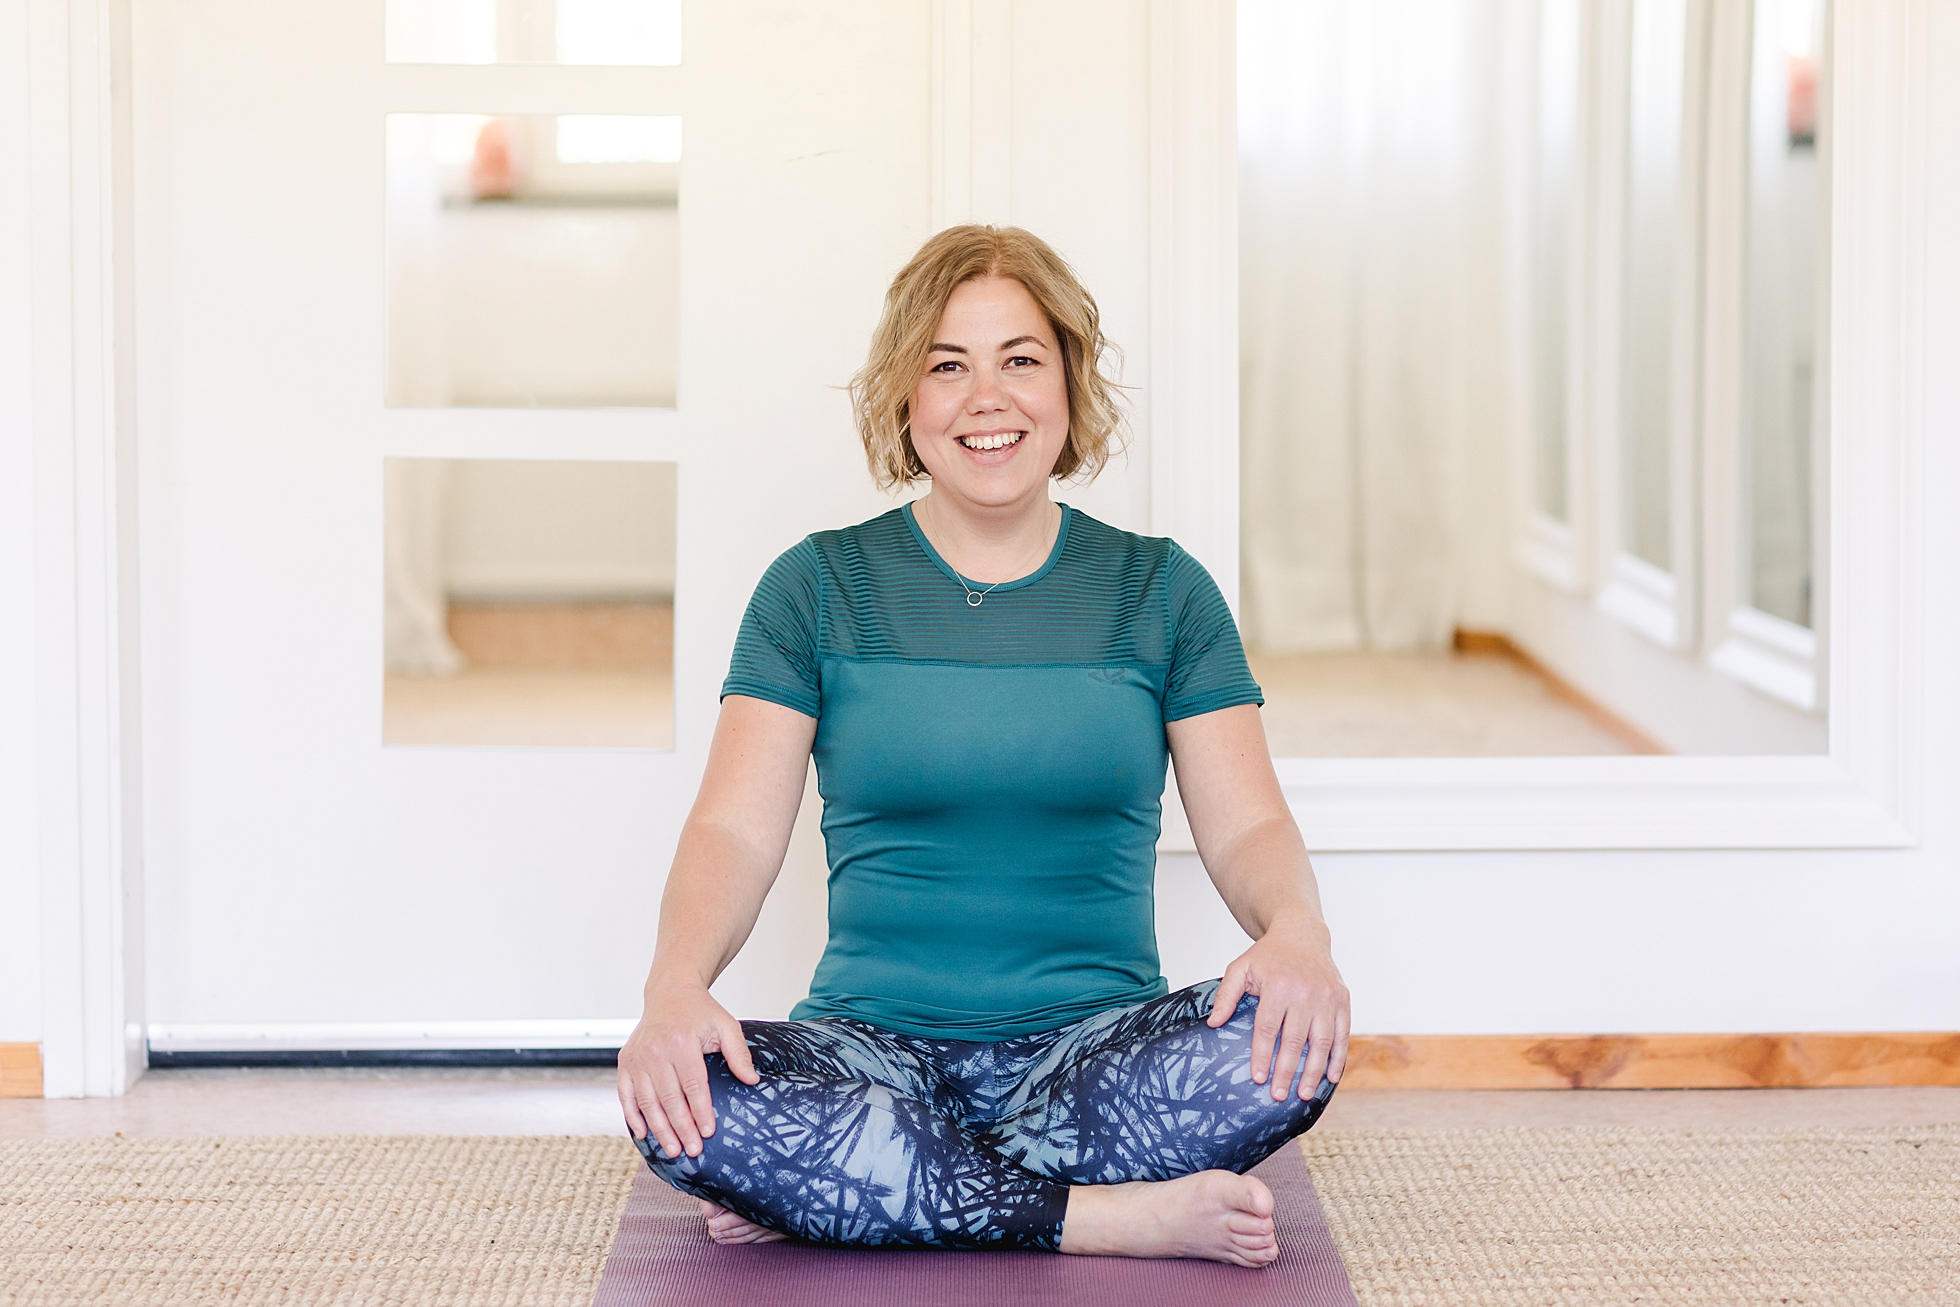 A yoga instructor sitting and smiling